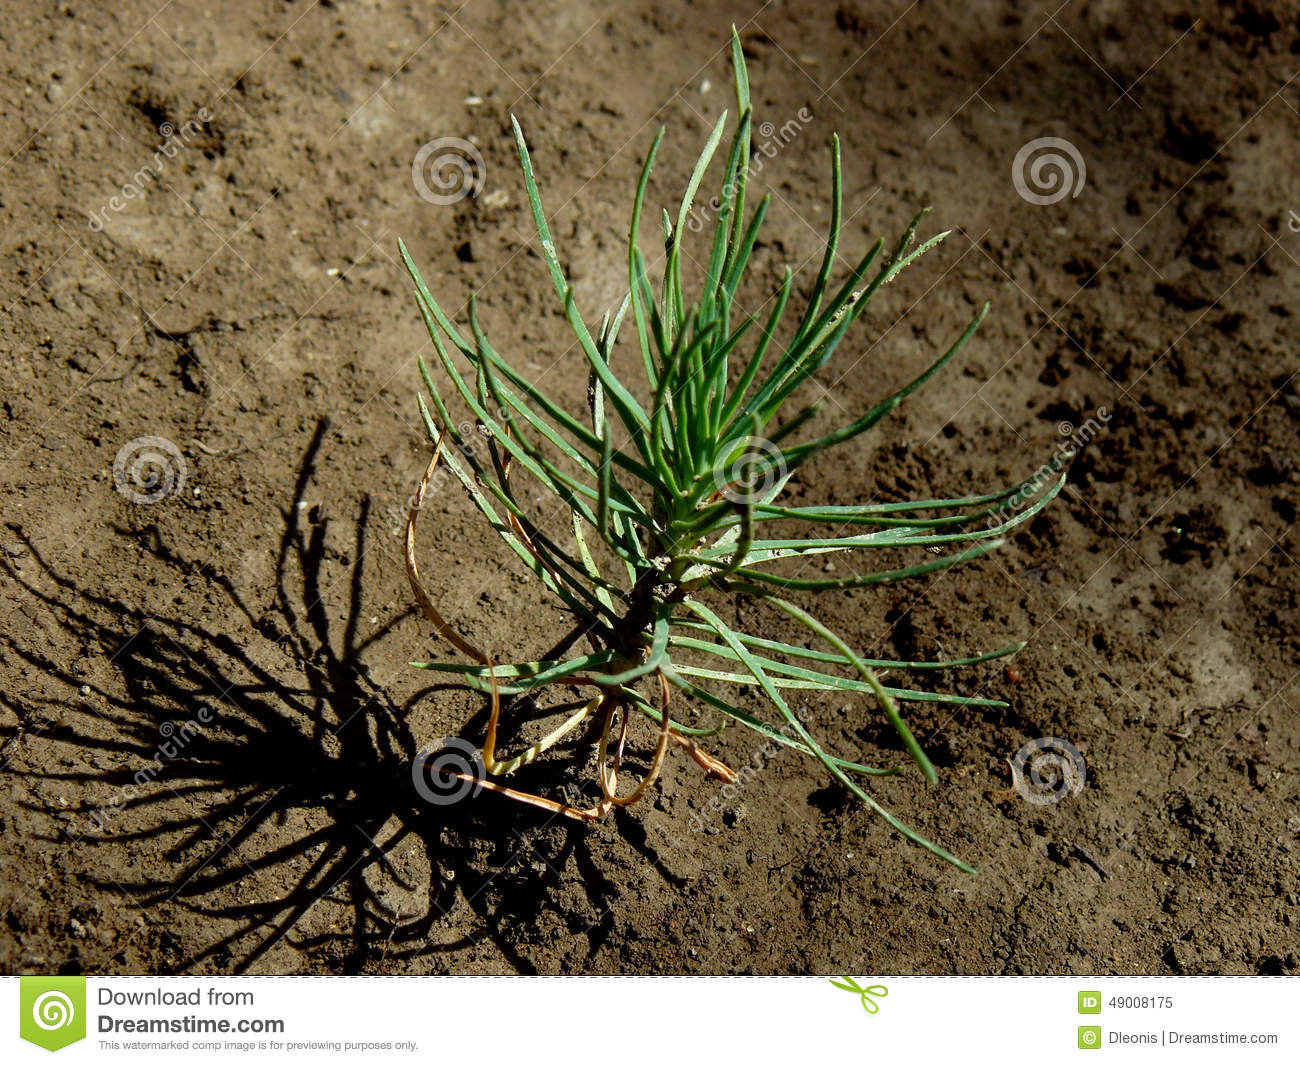 Tiny pine tree seedling stock image. Image of agriculture - 49008175